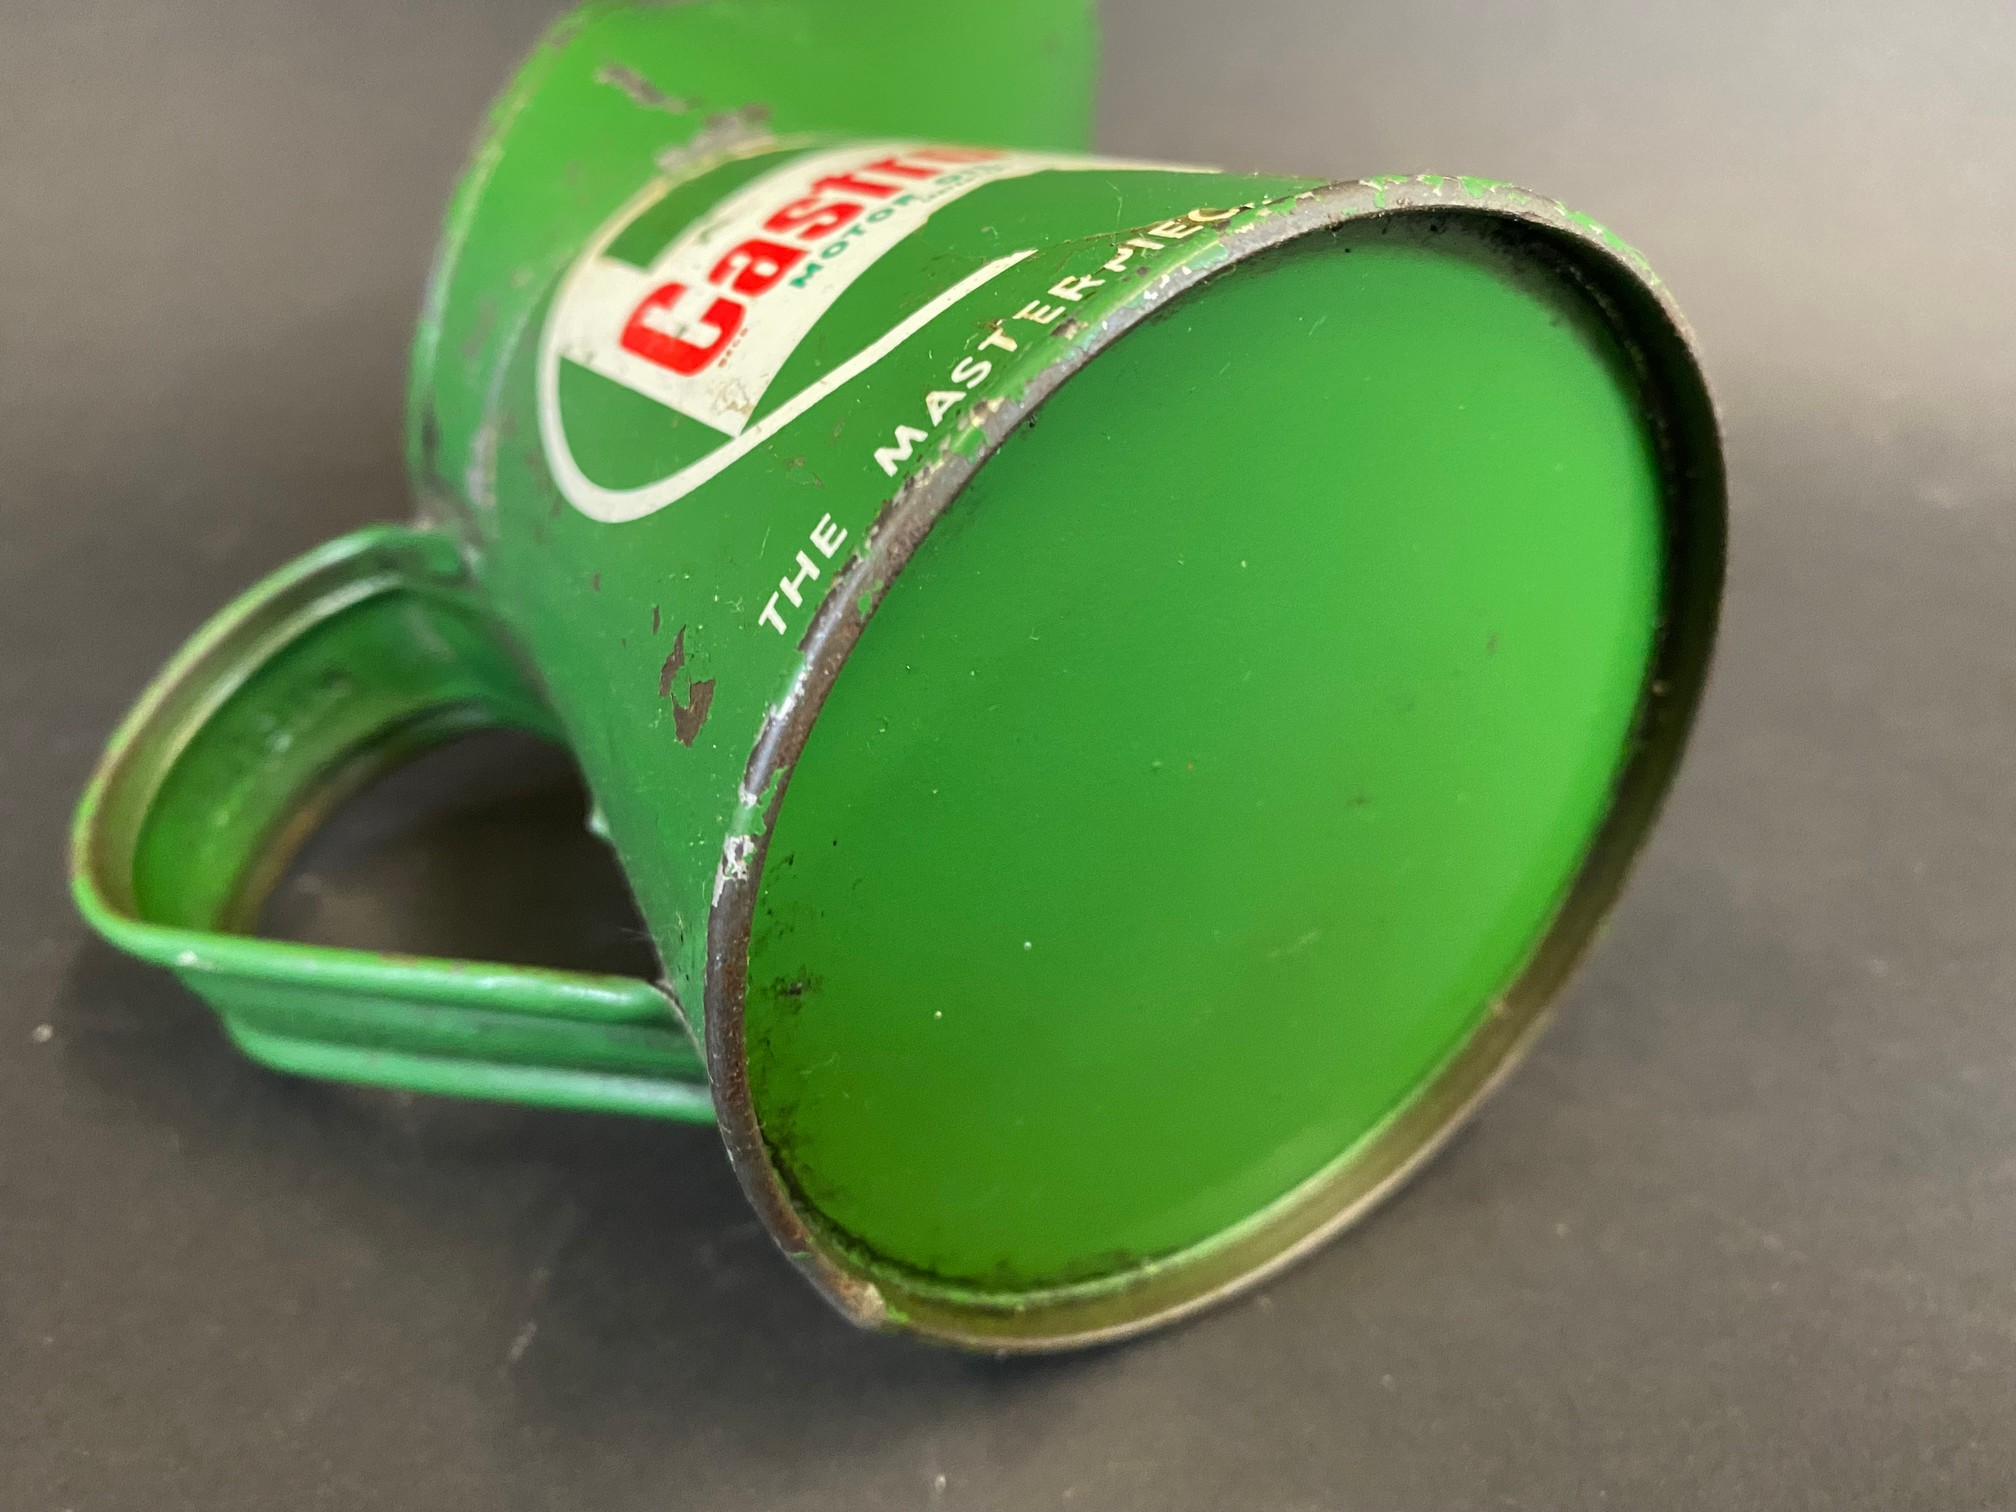 A Castrol Motor Oil half pint measure, dated 1965. - Image 4 of 4